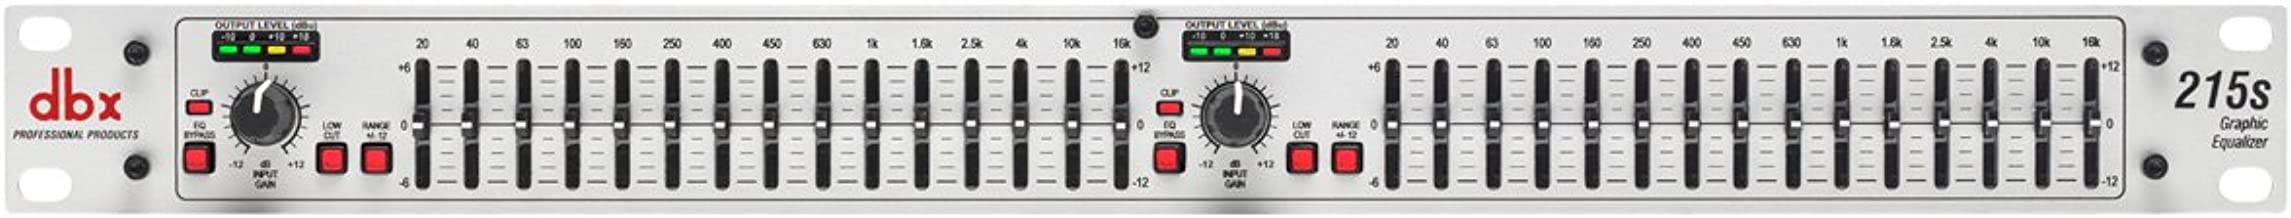 dbx 231s Dual Channel 15-Band Equalizer